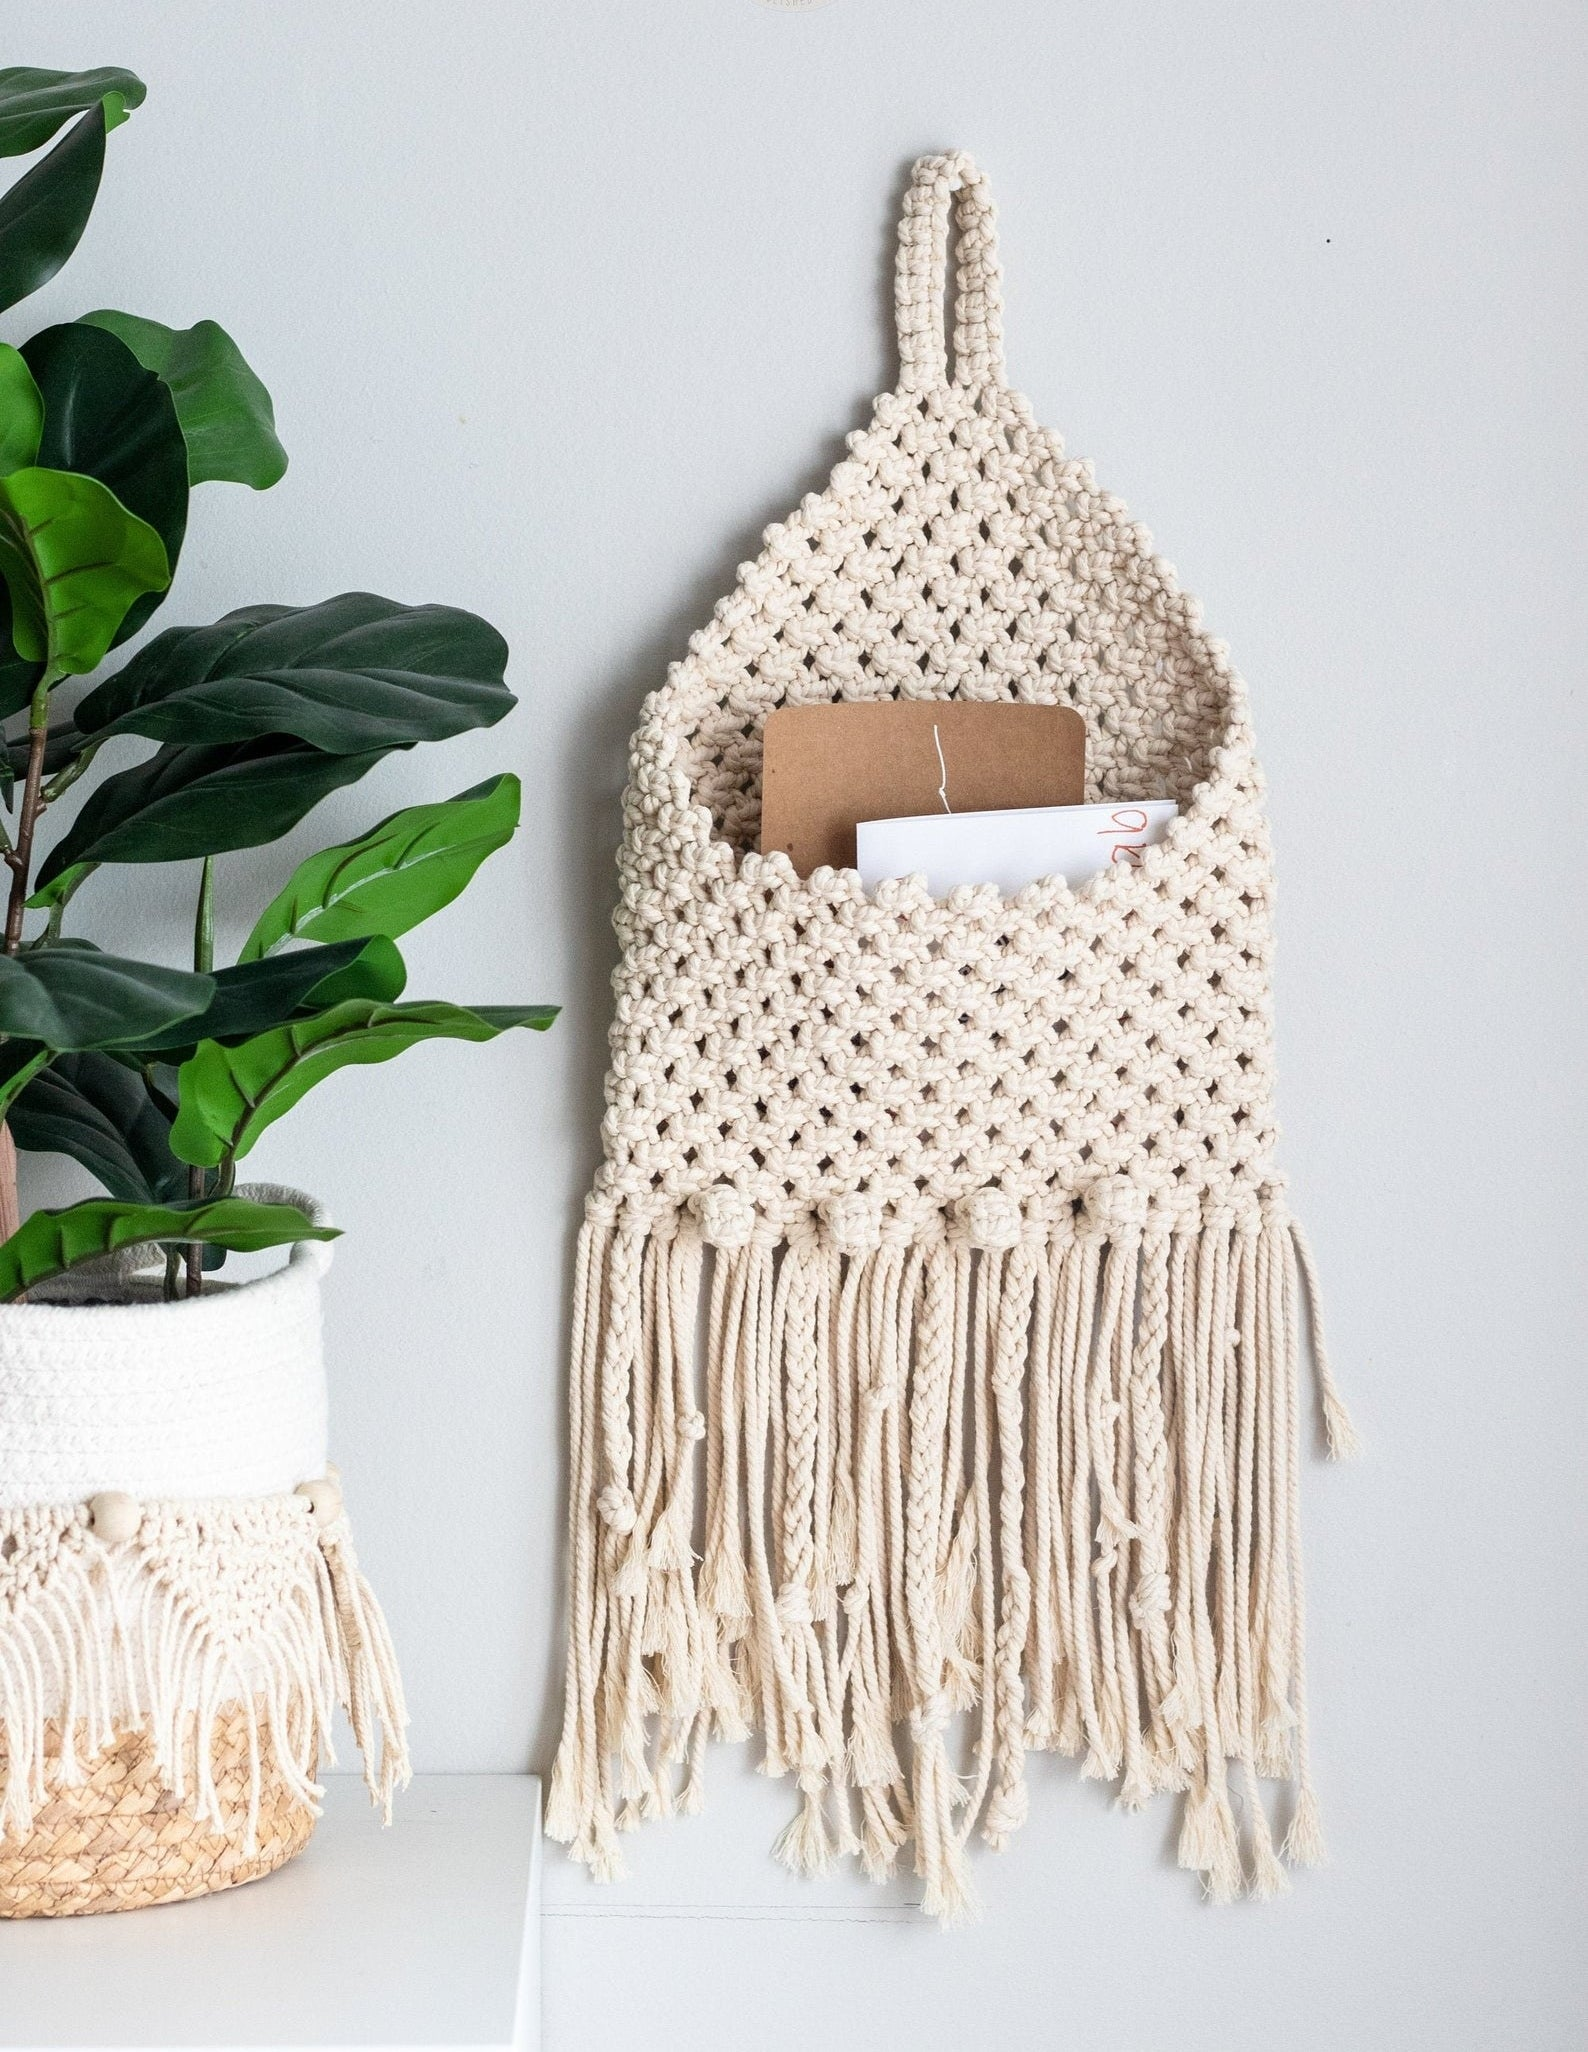 the cream-colored macrame envelope holder holding a few cards